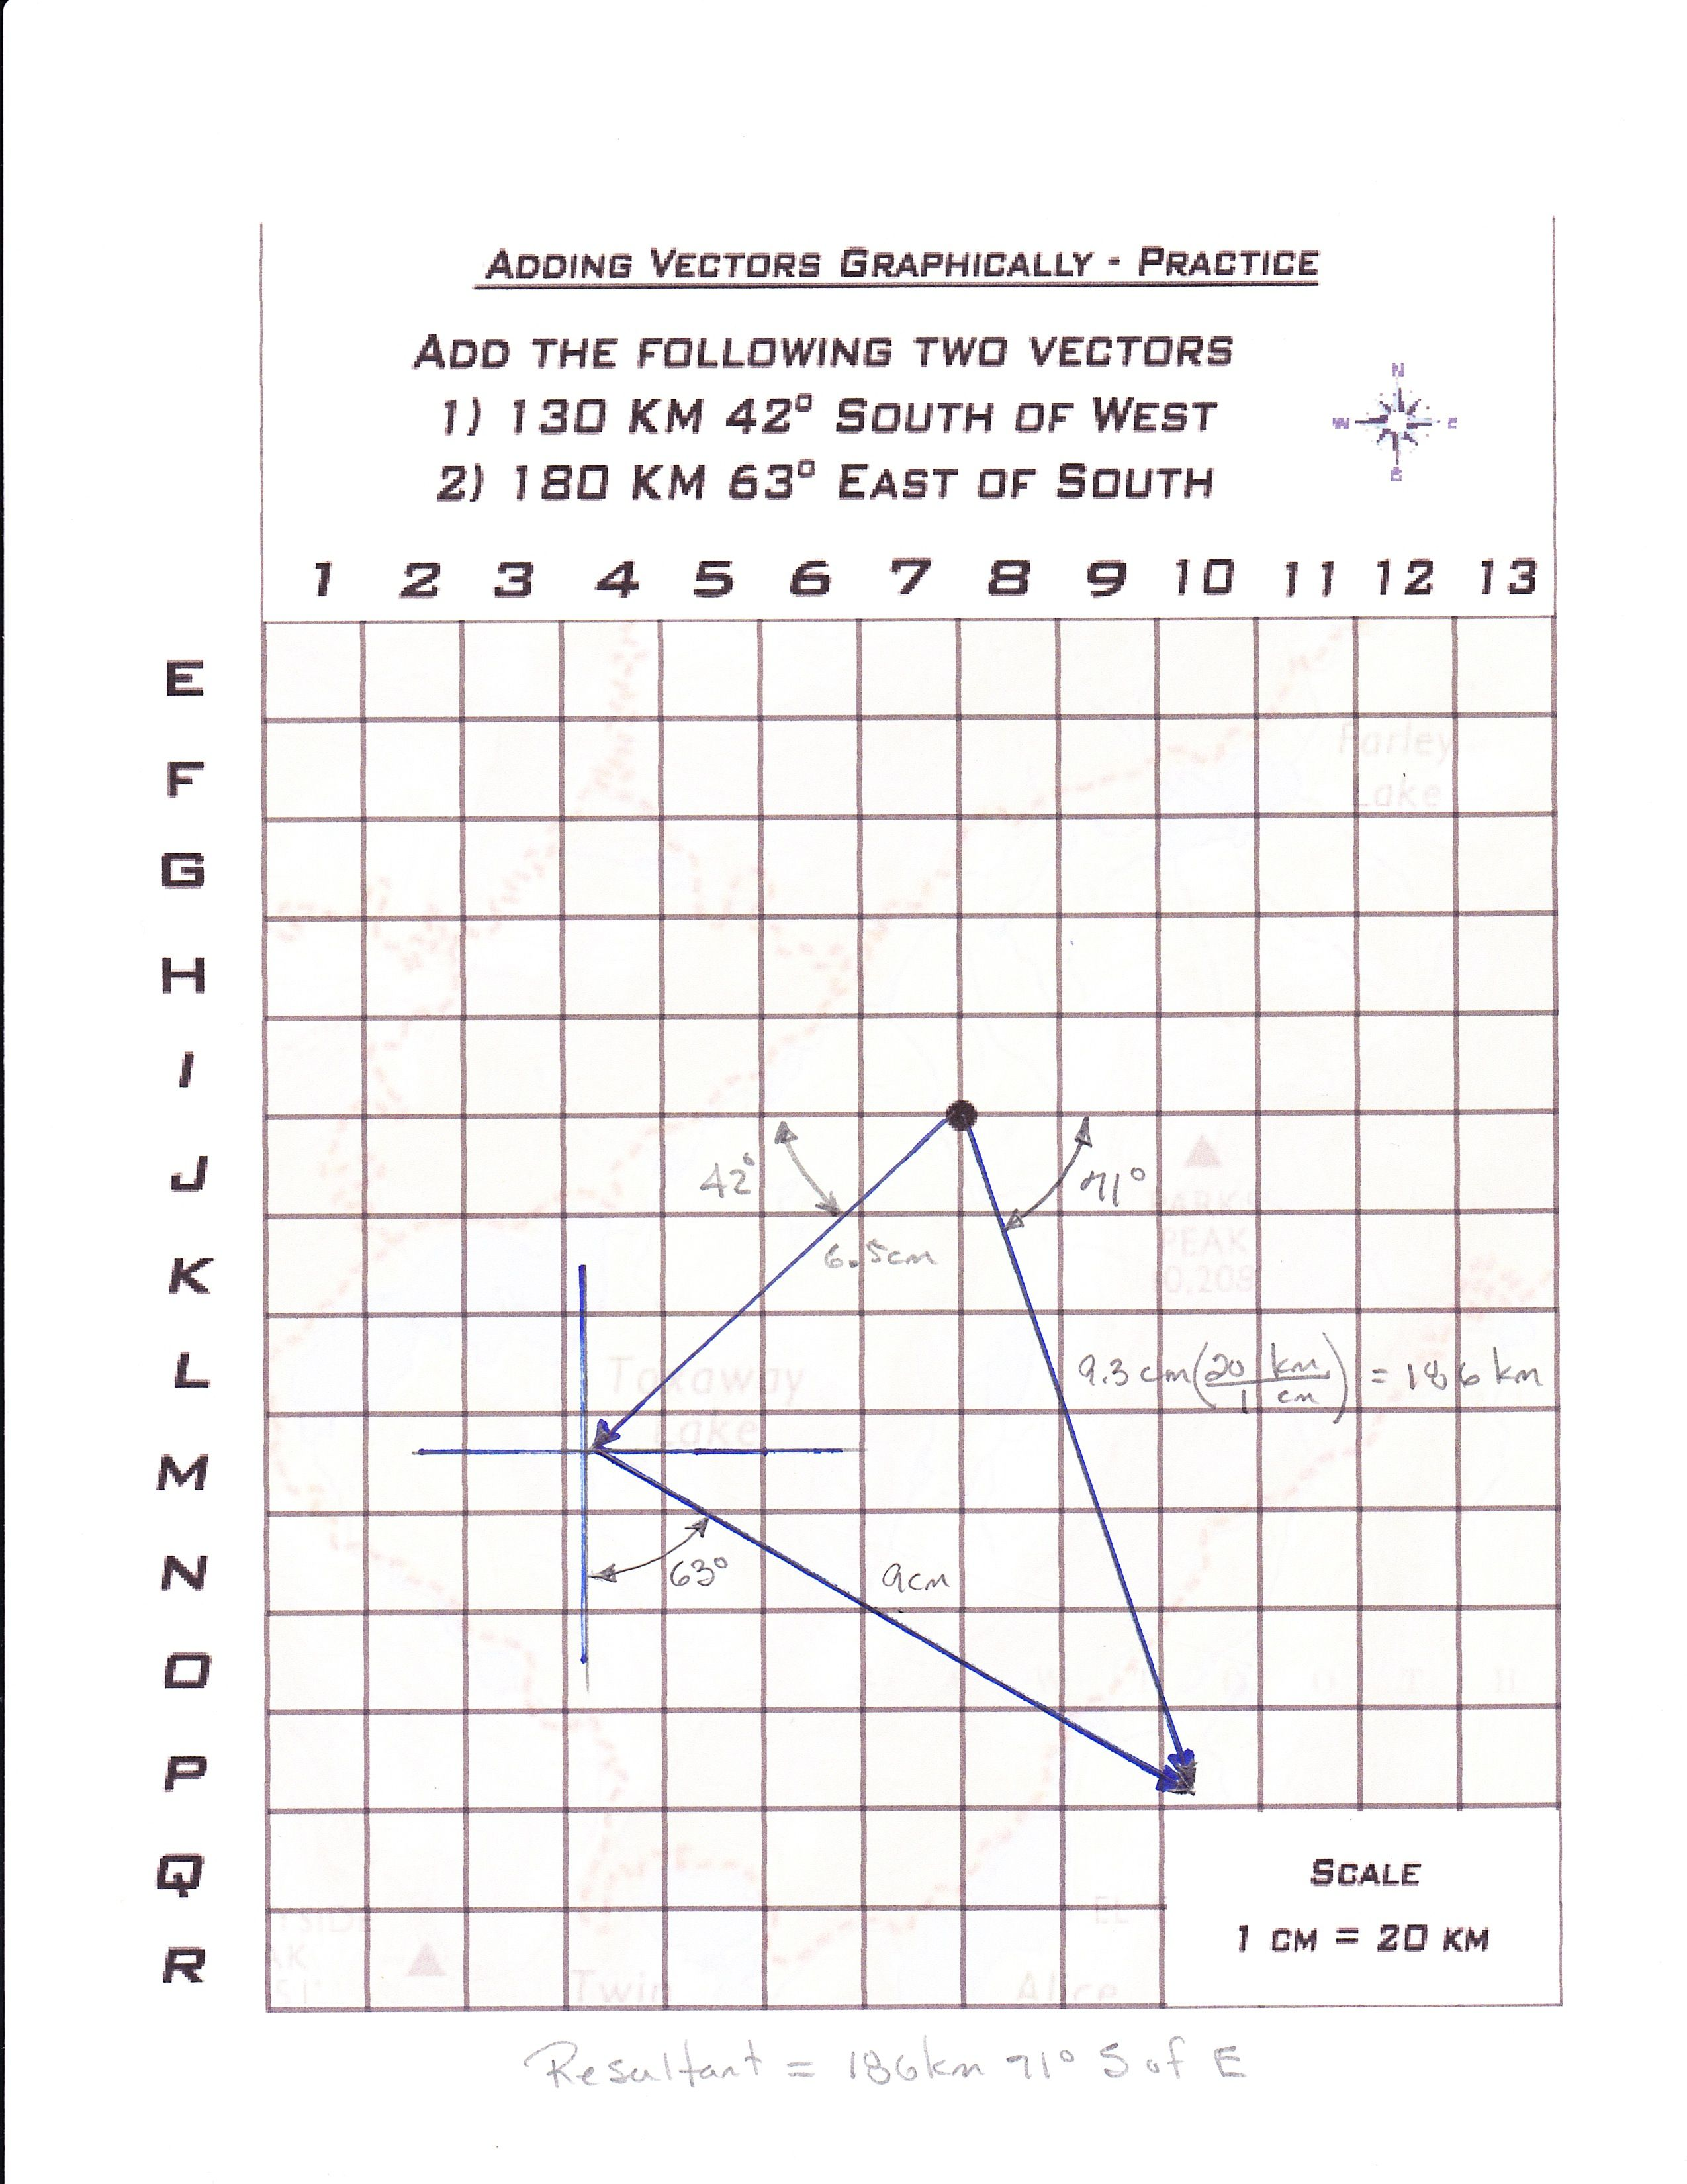 Adding Vectors Handouts The Adding Vectors Handouts Are Designed To Teach Students How To Add Basic Math Worksheets Math Practice Worksheets Worksheet Template Graphical addition of vectors worksheet